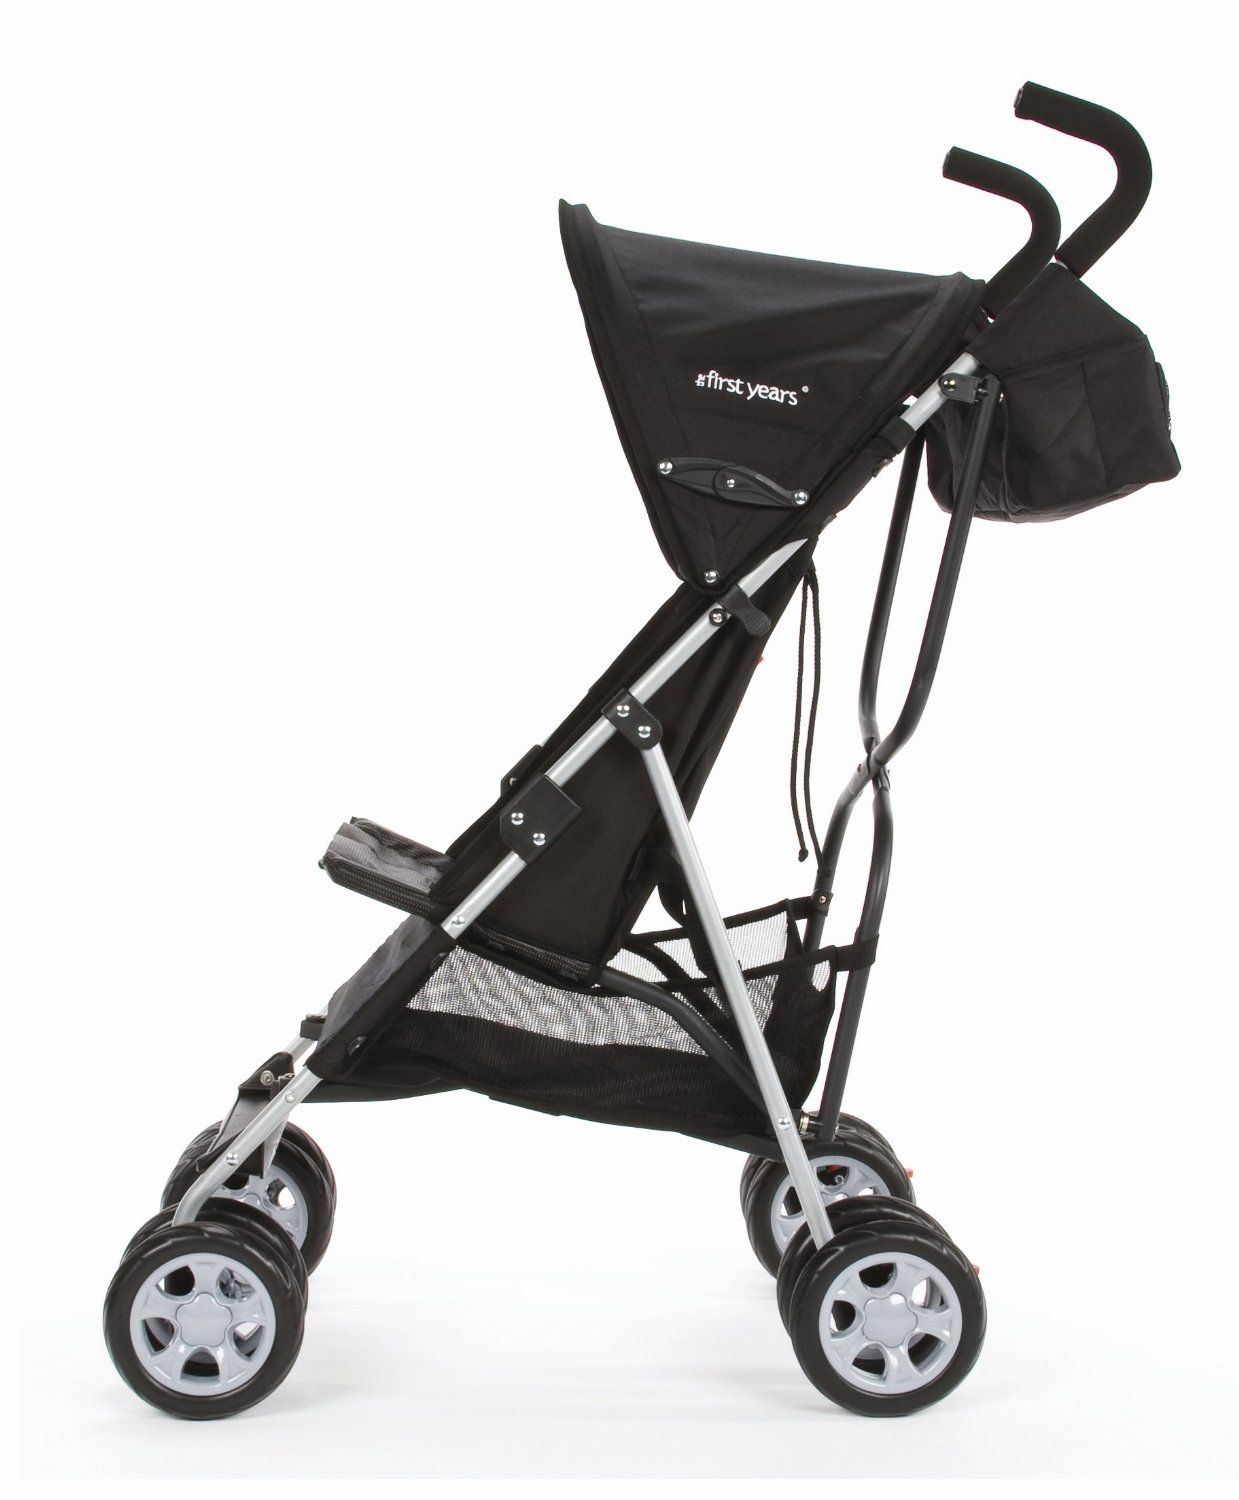 The First Years Jet Stroller travel system Stroller